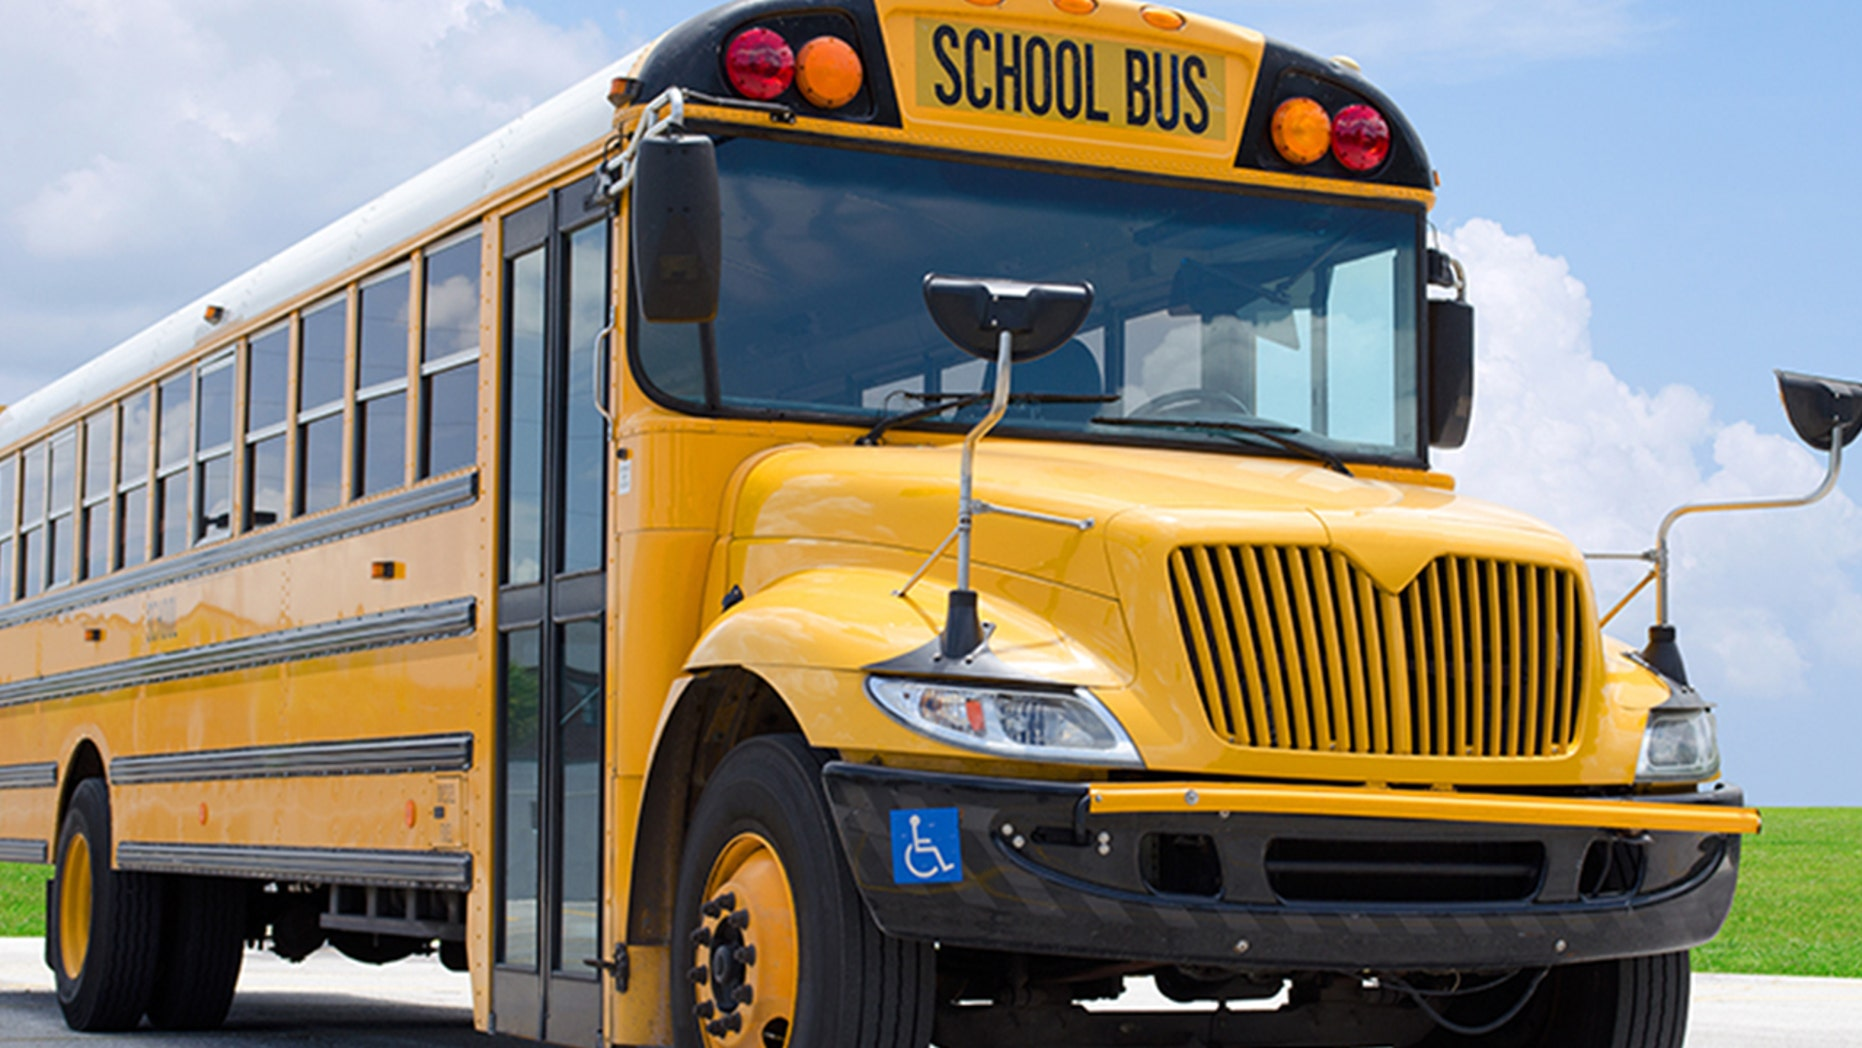 Christopher Martinez was arrested Monday after he allegedly tried to steal a school bus full of elementary schoolchildren.